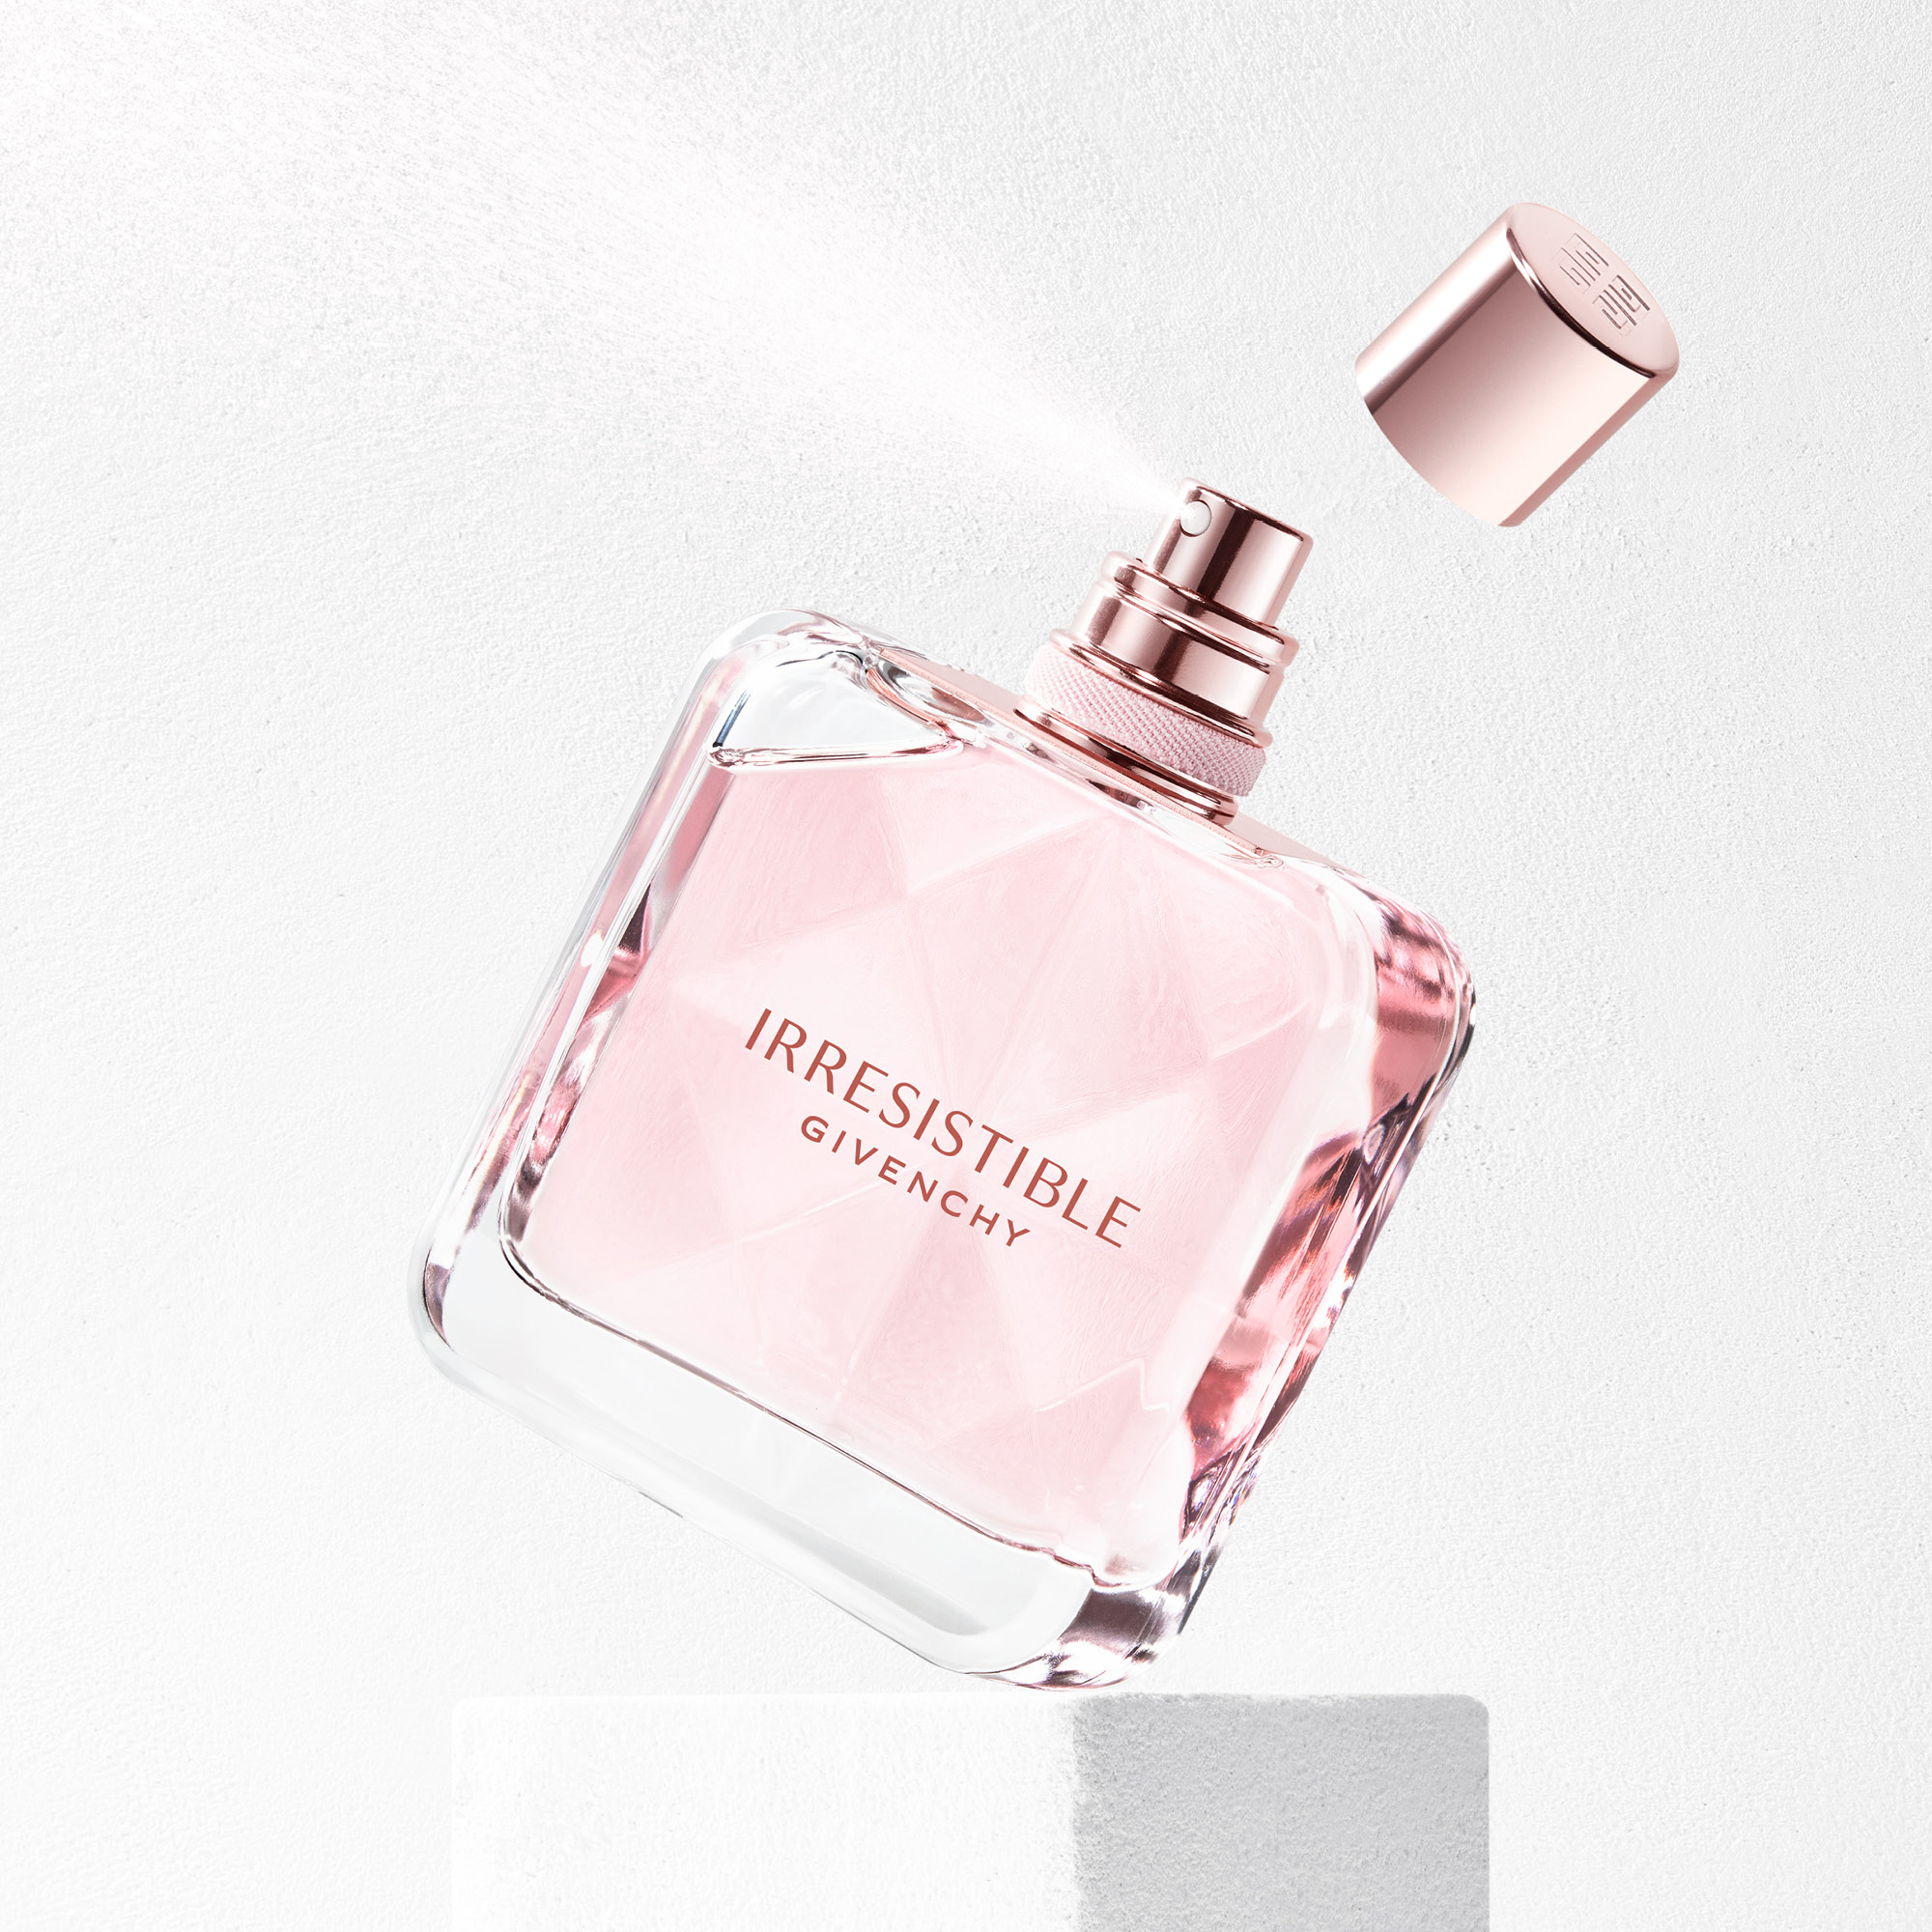 GIVENCHY   IRRESISTIBLE  EDT  35.ML